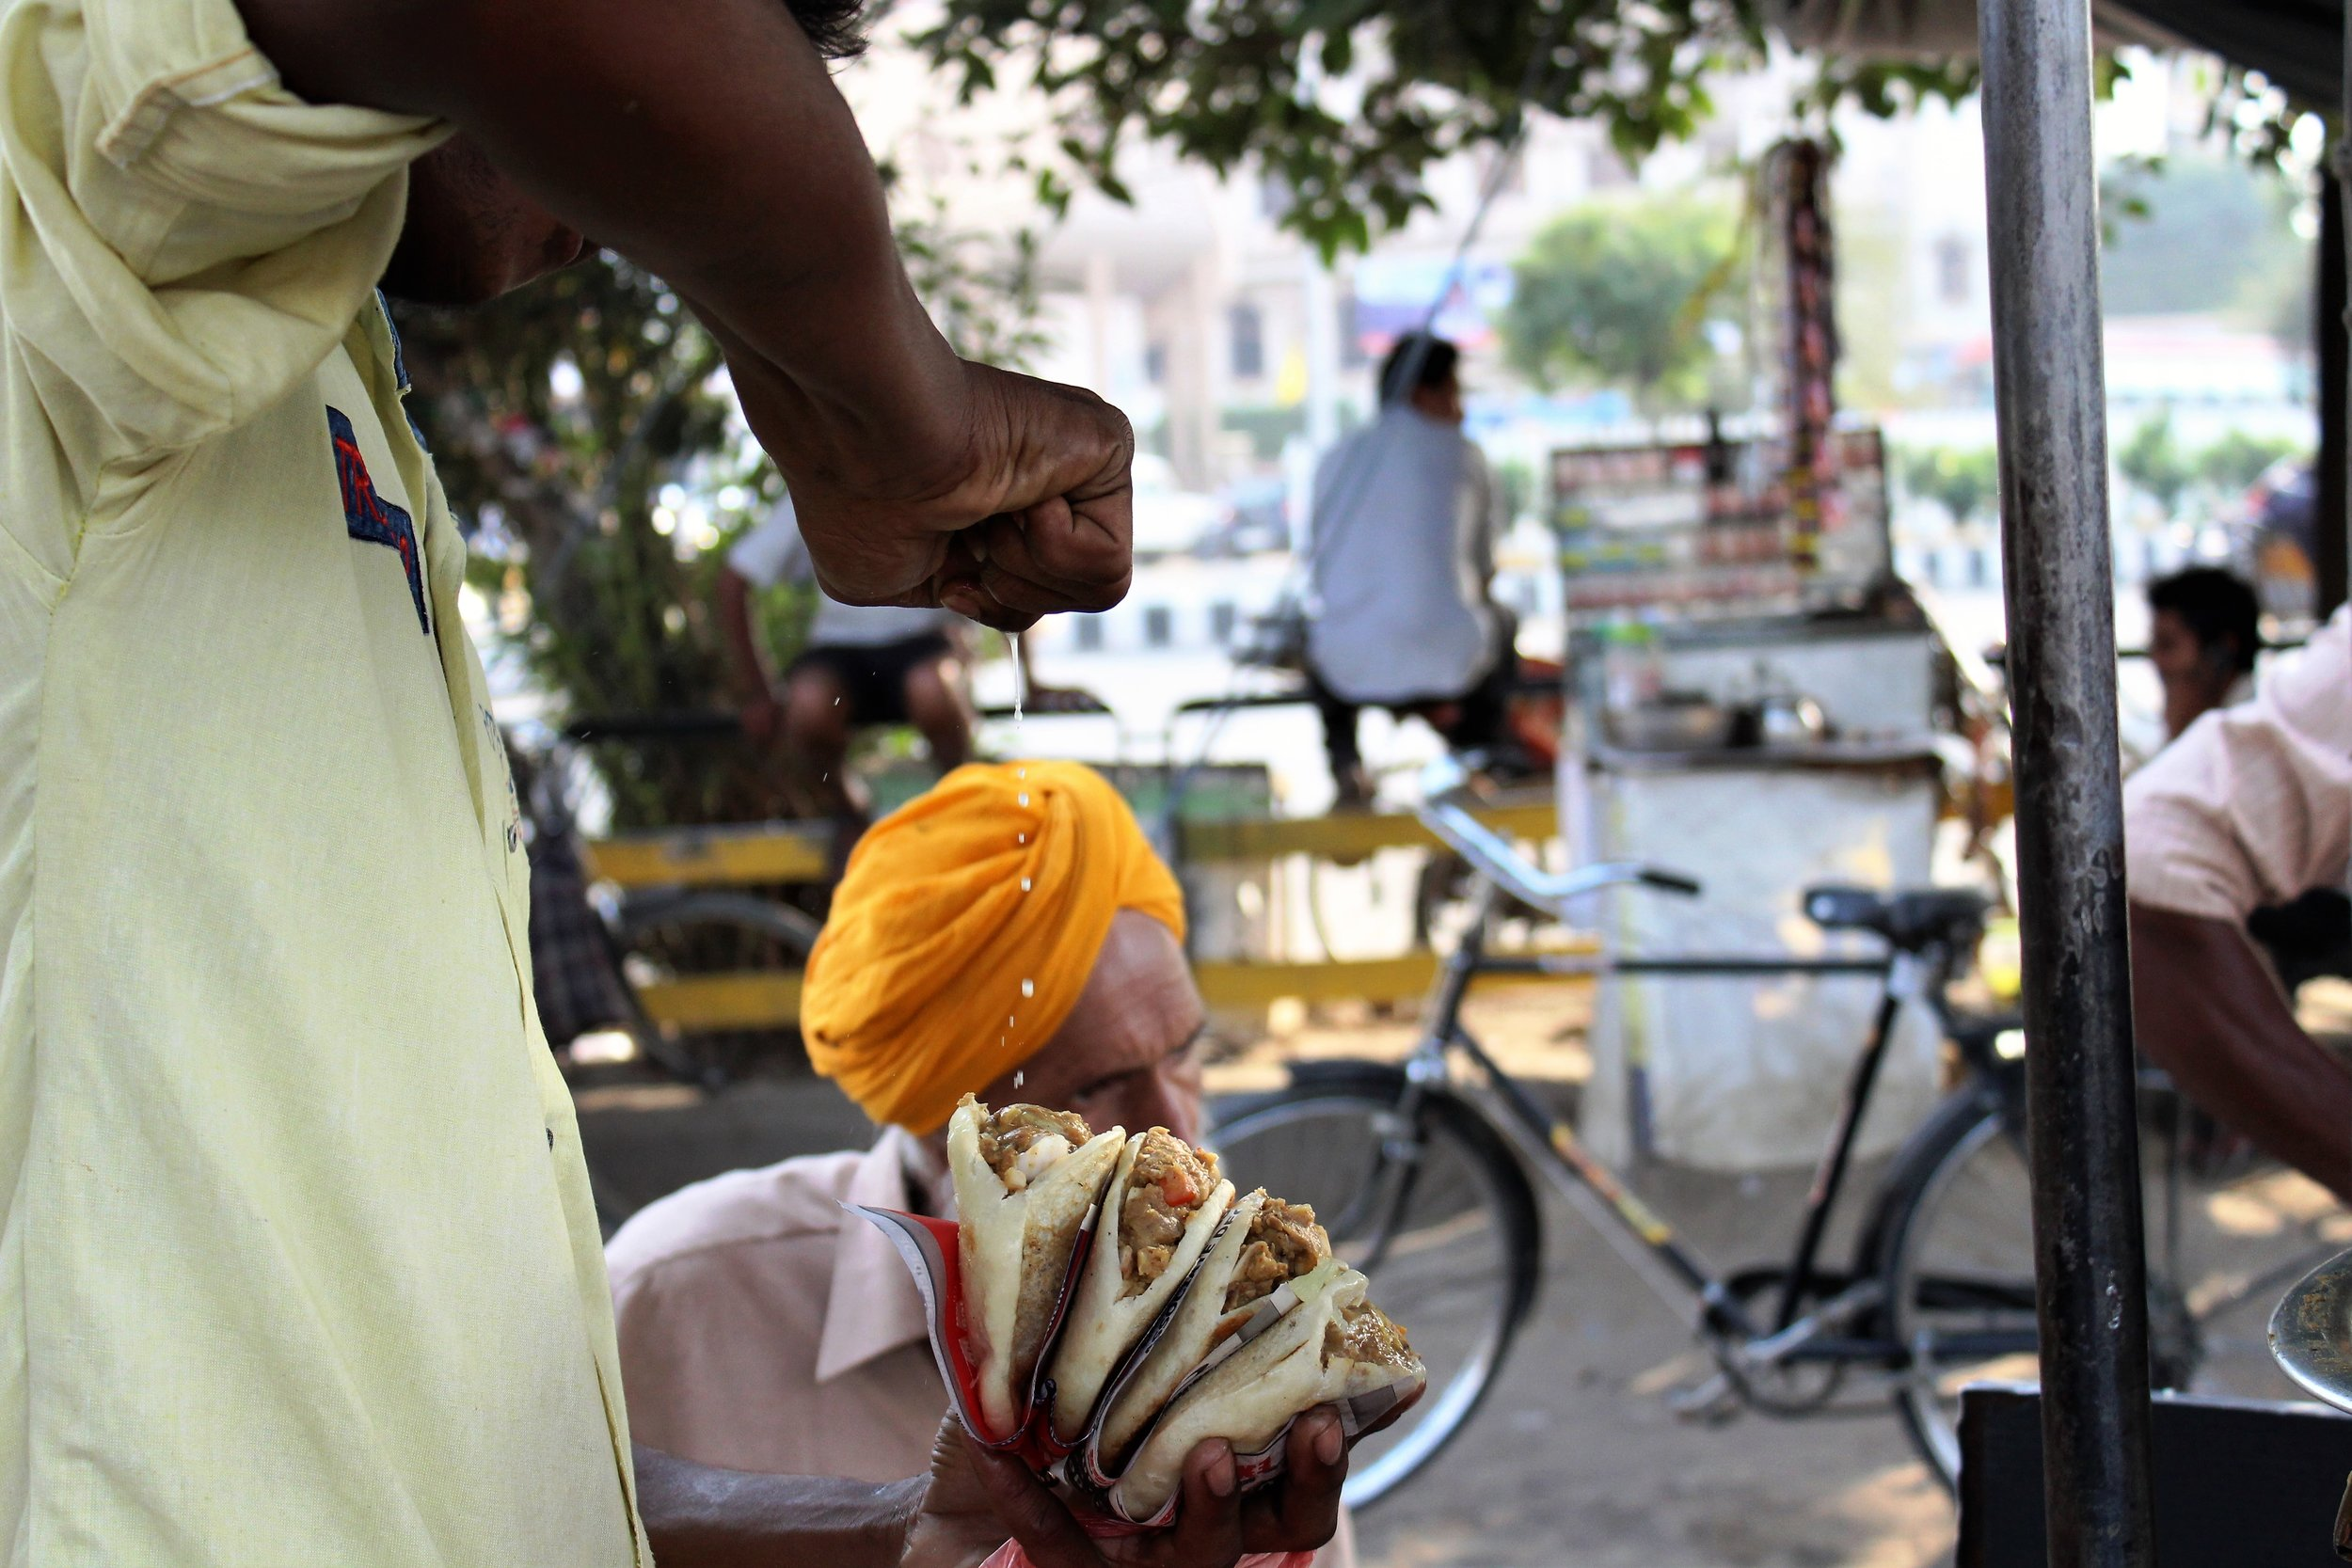 A street vendor squeezes a piece of lemon on Chhole Kulche, a type of street food. Credit: Atul Anand